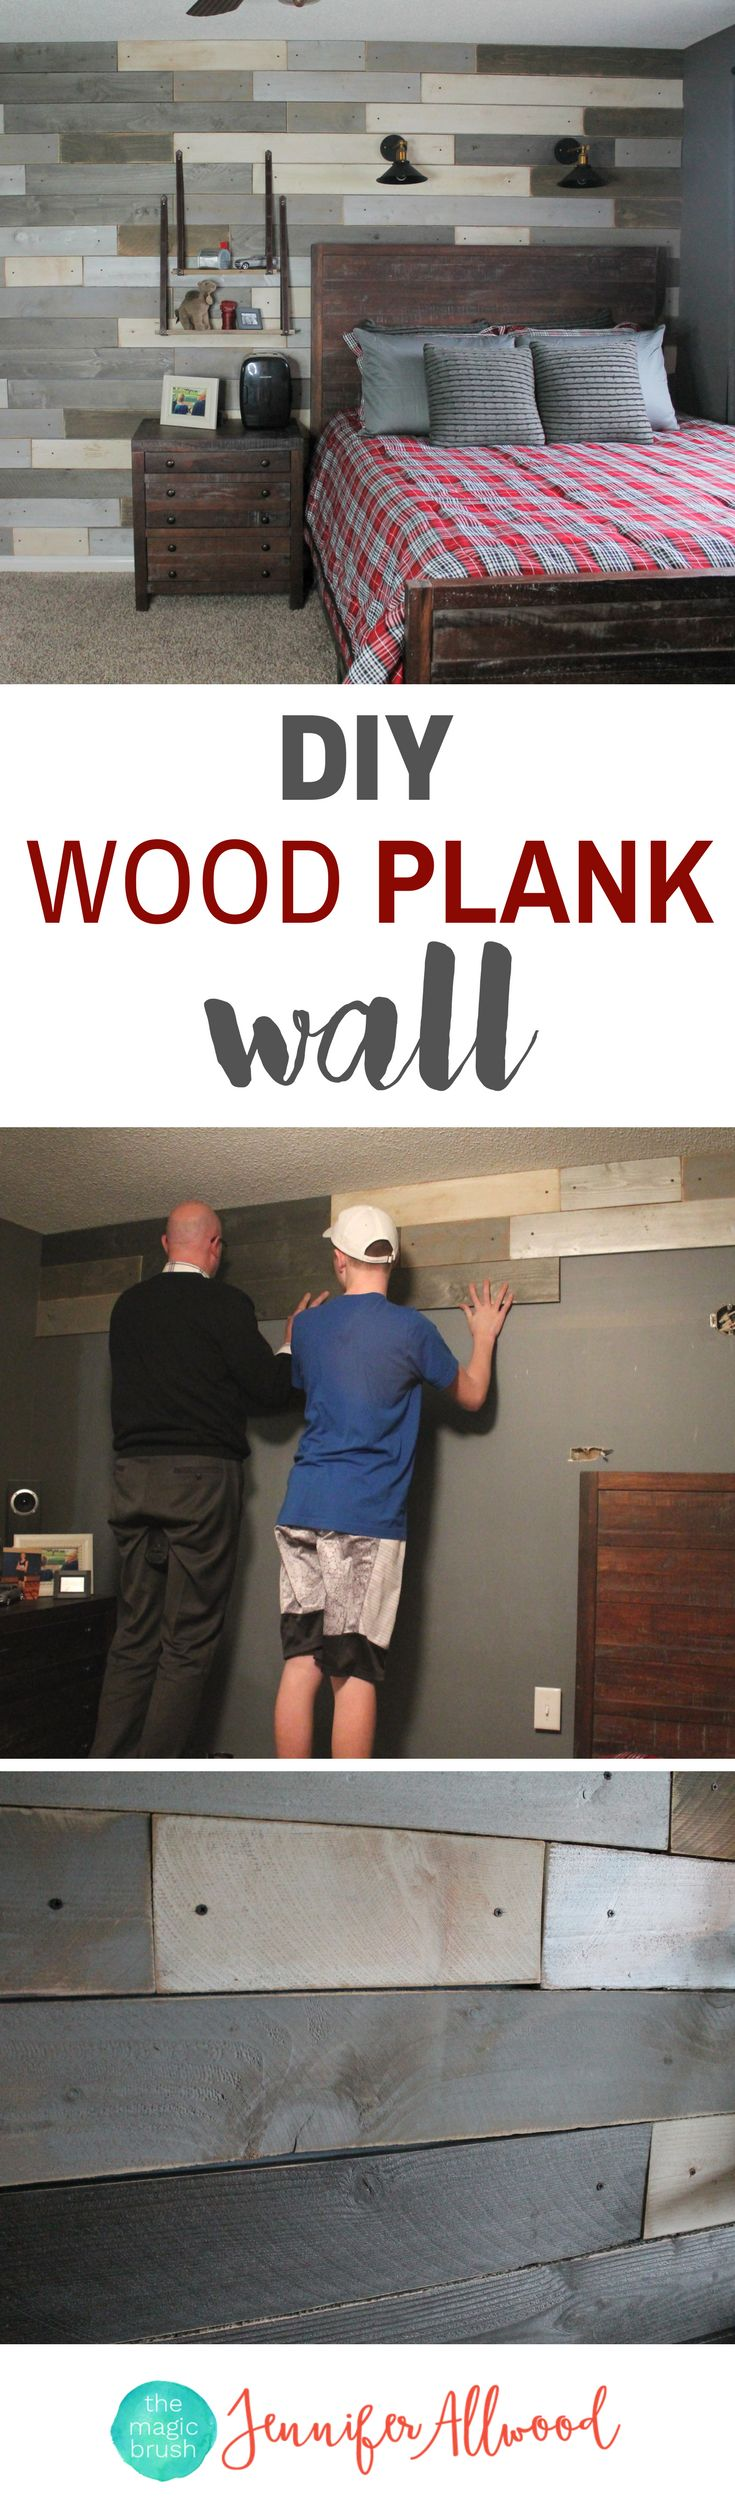 Painted Cedar Wood Plank Wall | Boys Room Decorating Ideas | DIY Accent Walls & Focal Wall | Magic Brush